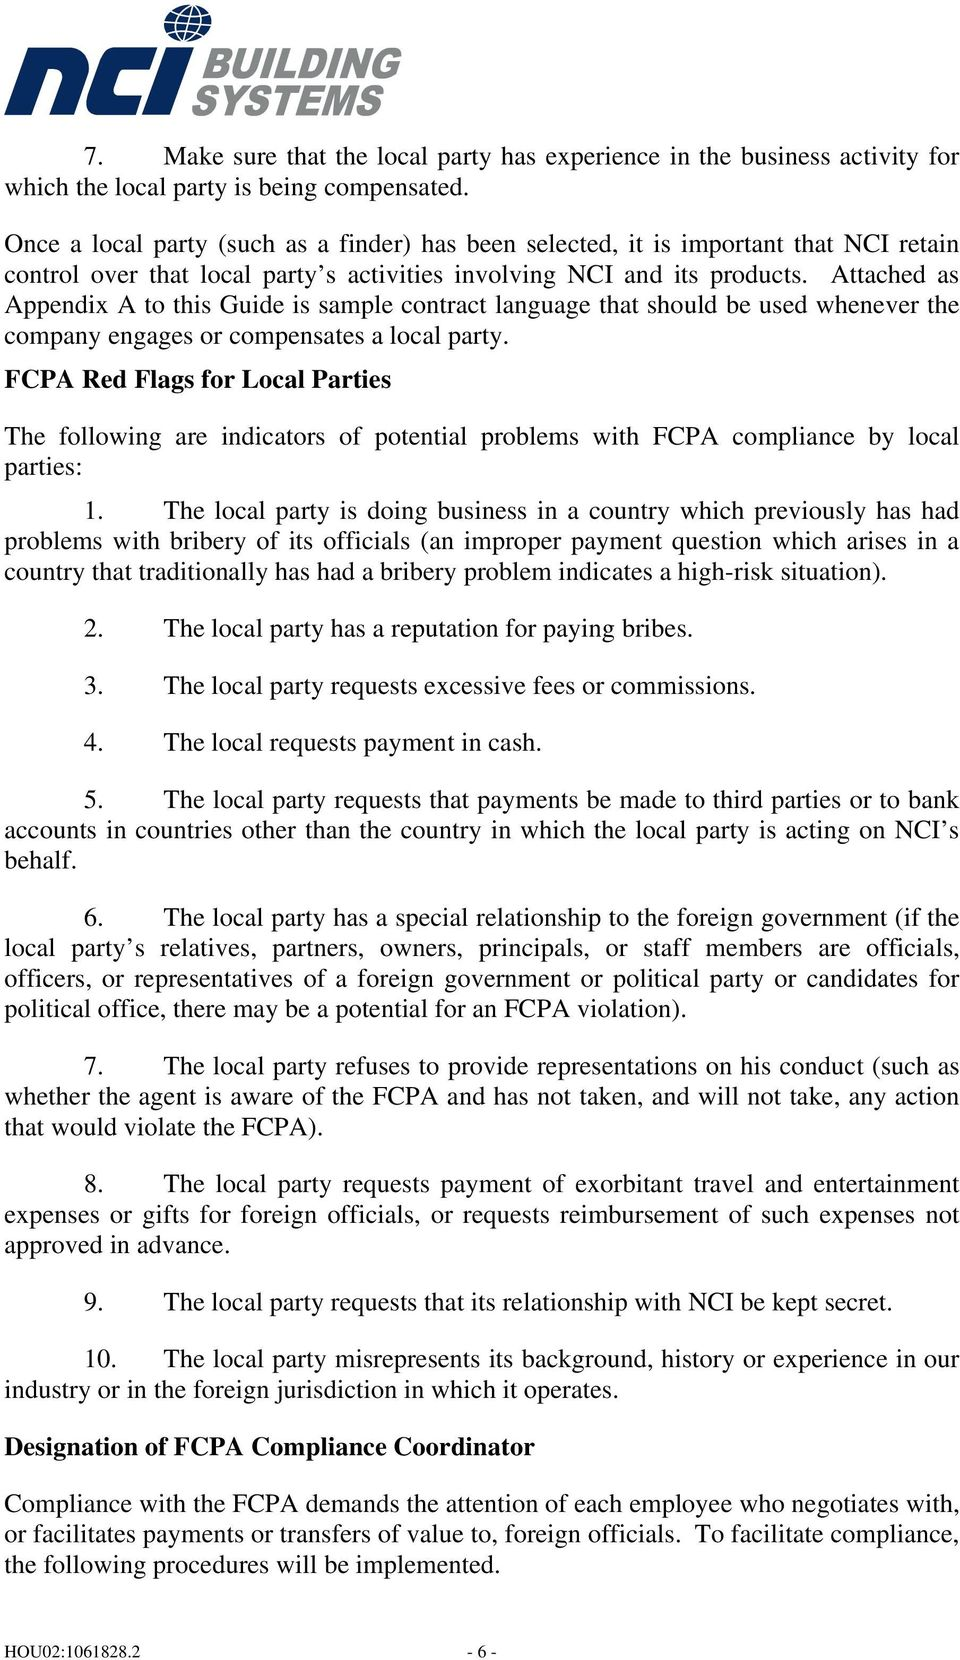 Attached as Appendix A to this Guide is sample contract language that should be used whenever the company engages or compensates a local party.